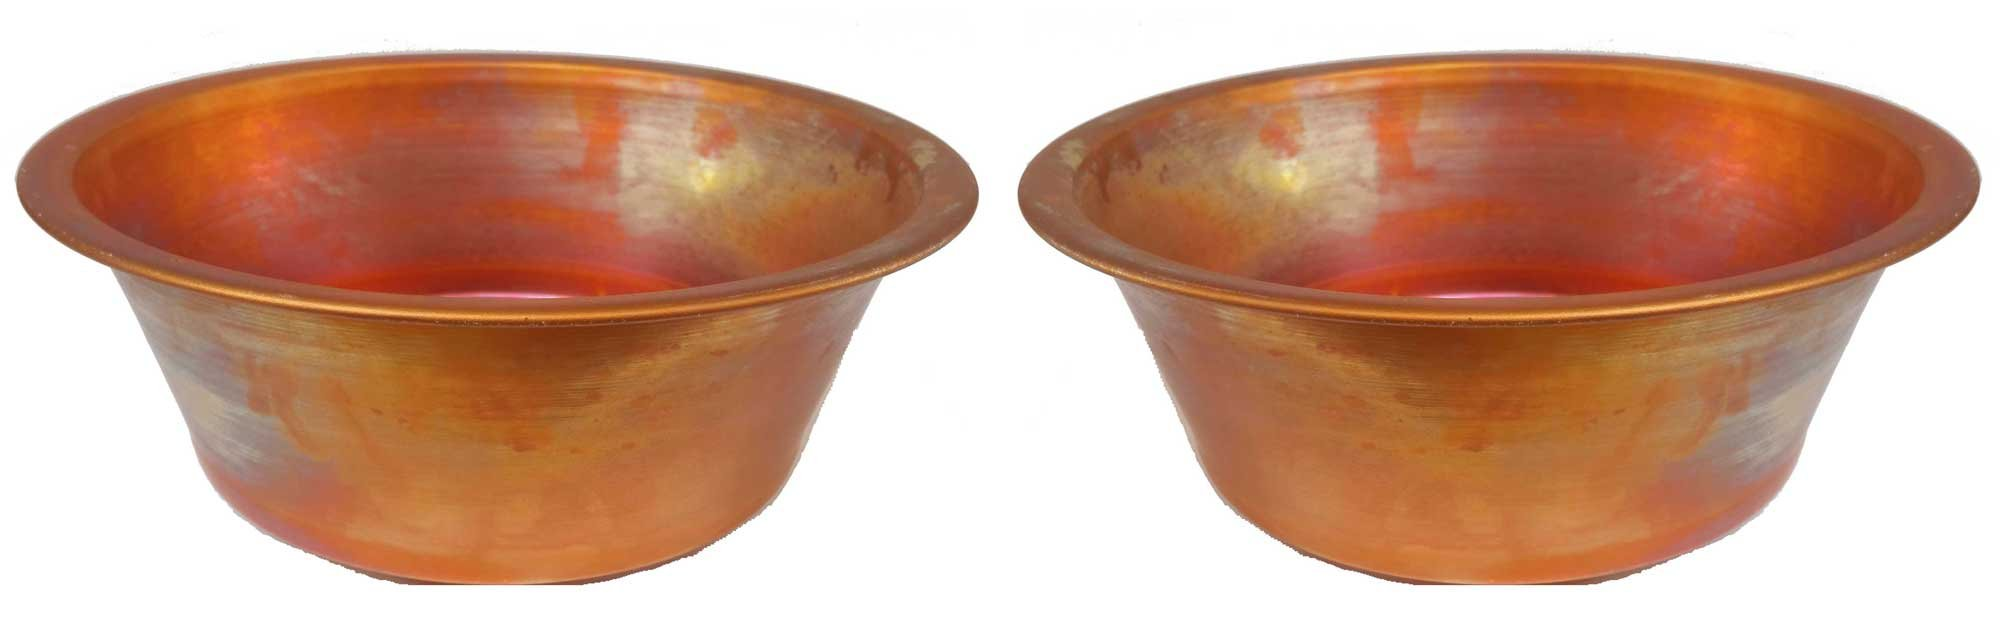 Egypt gift shops Pair SMALL HANDMADE Vessel 11'' Copper Pan Panning Bowls Basins Toilet Bathroom Sinks Wholesale by Egypt gift shops